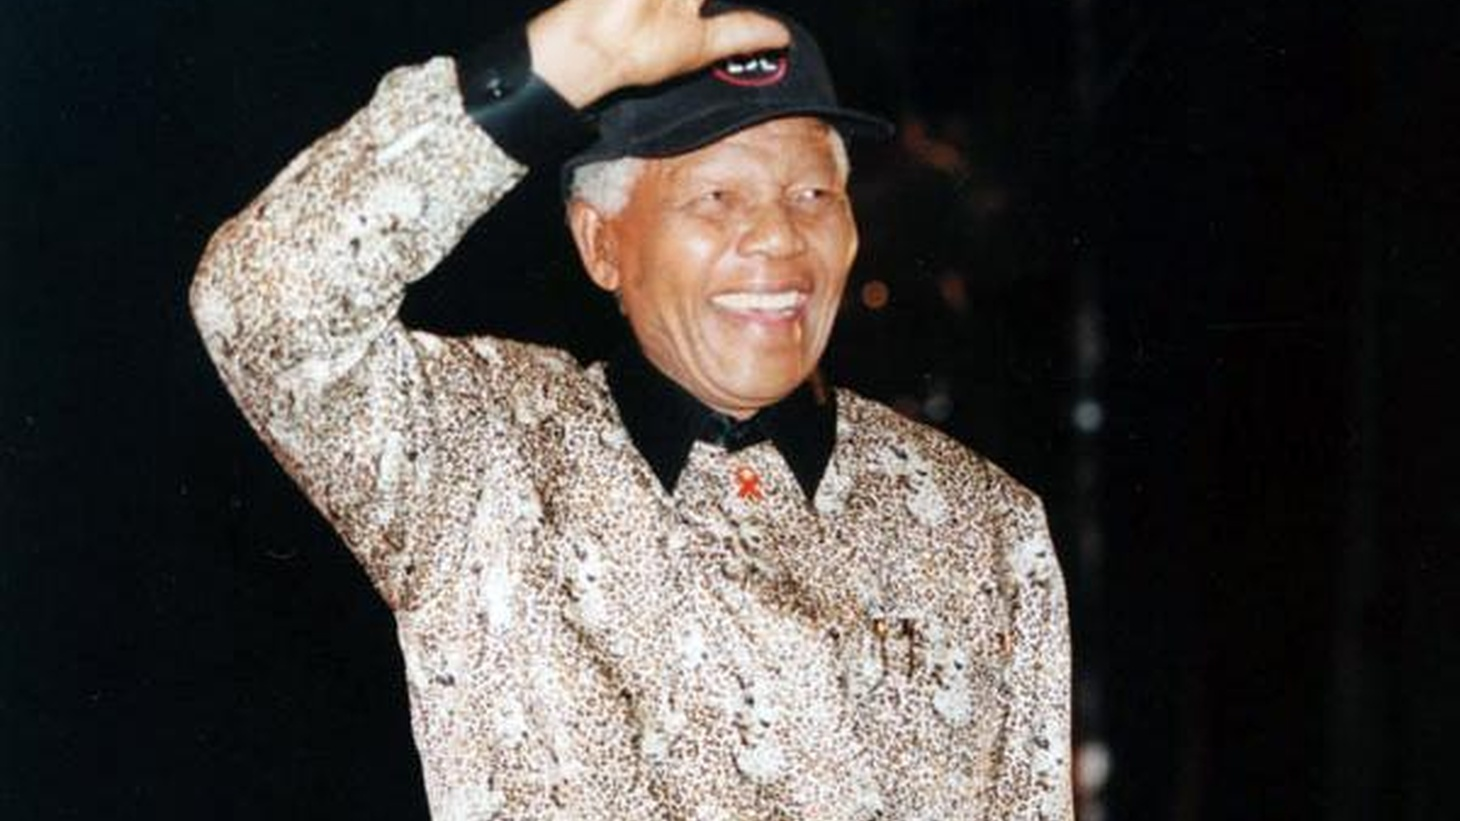 Tom Schnabel remembers Nelson Mandela in South African music from 1939 to present.